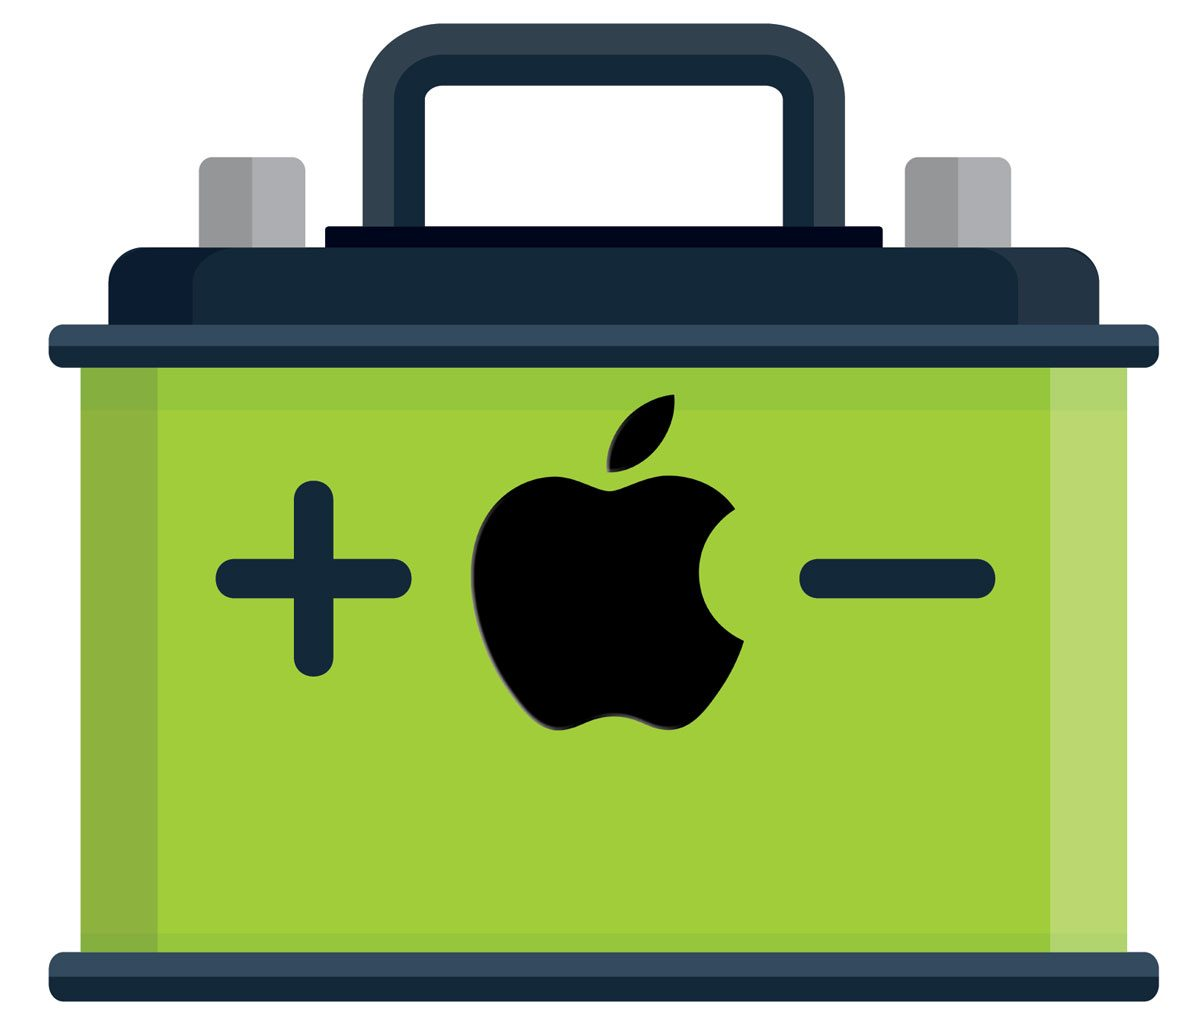 A stylized car battery with an Apple logo